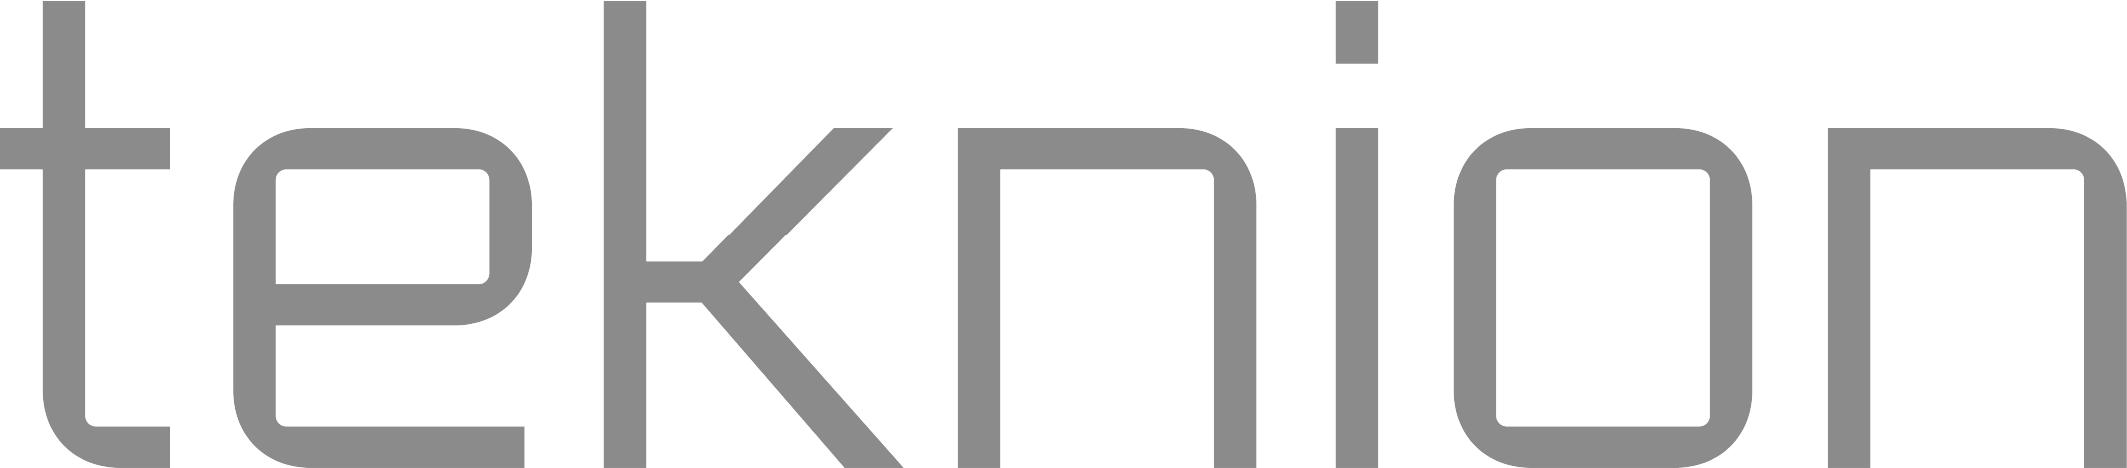 TeknionLogoGrey-SCREEN- SMALL-TransparentBack-Preferred.png